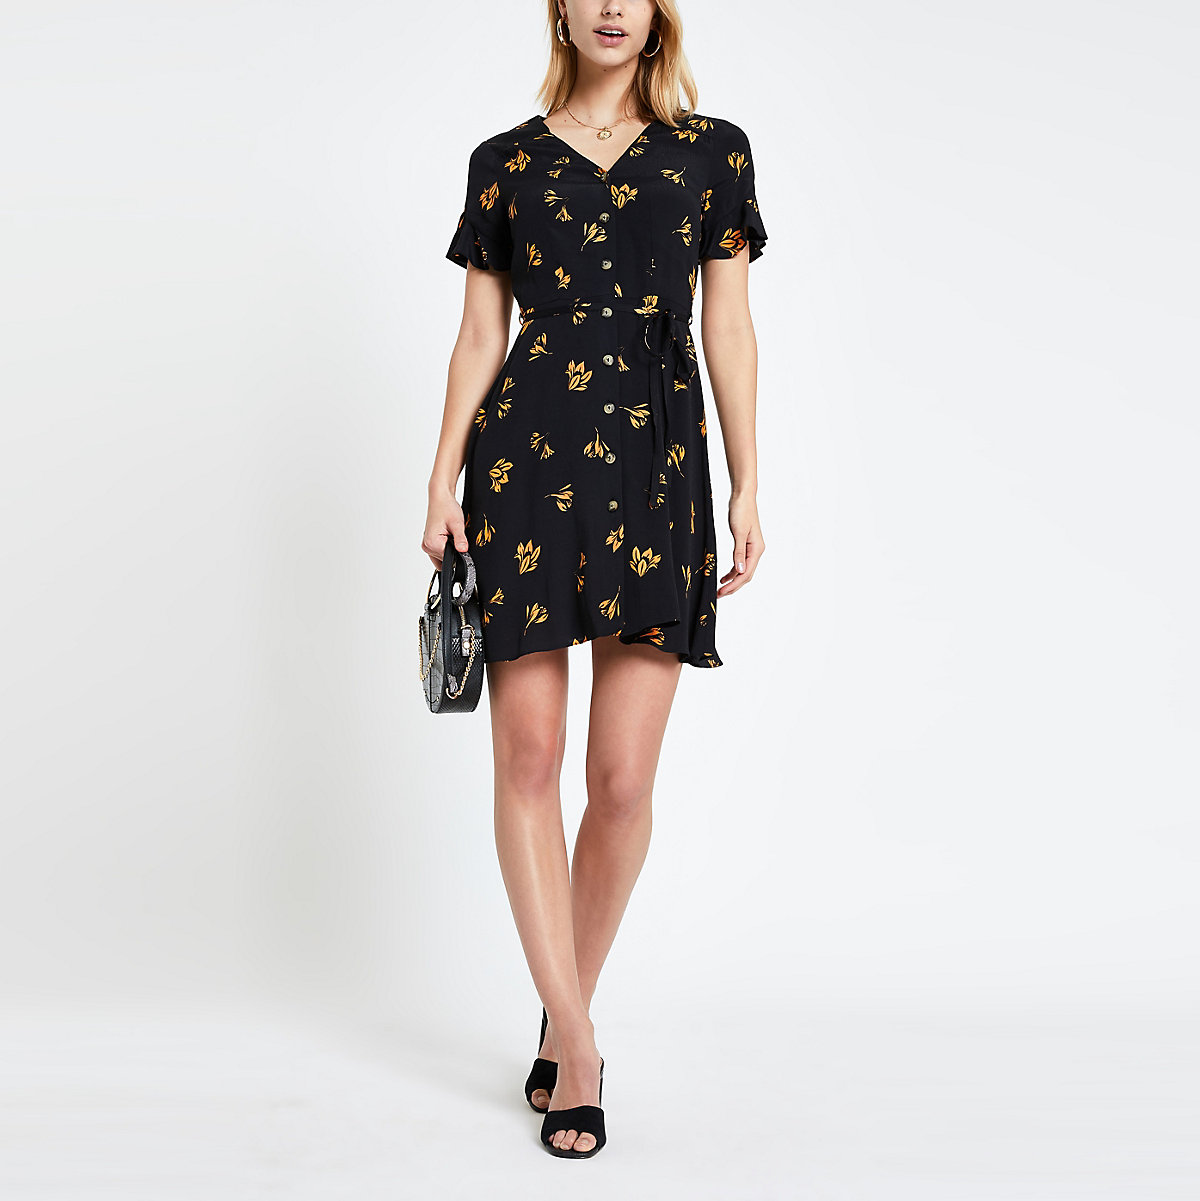 Black floral print tea dress